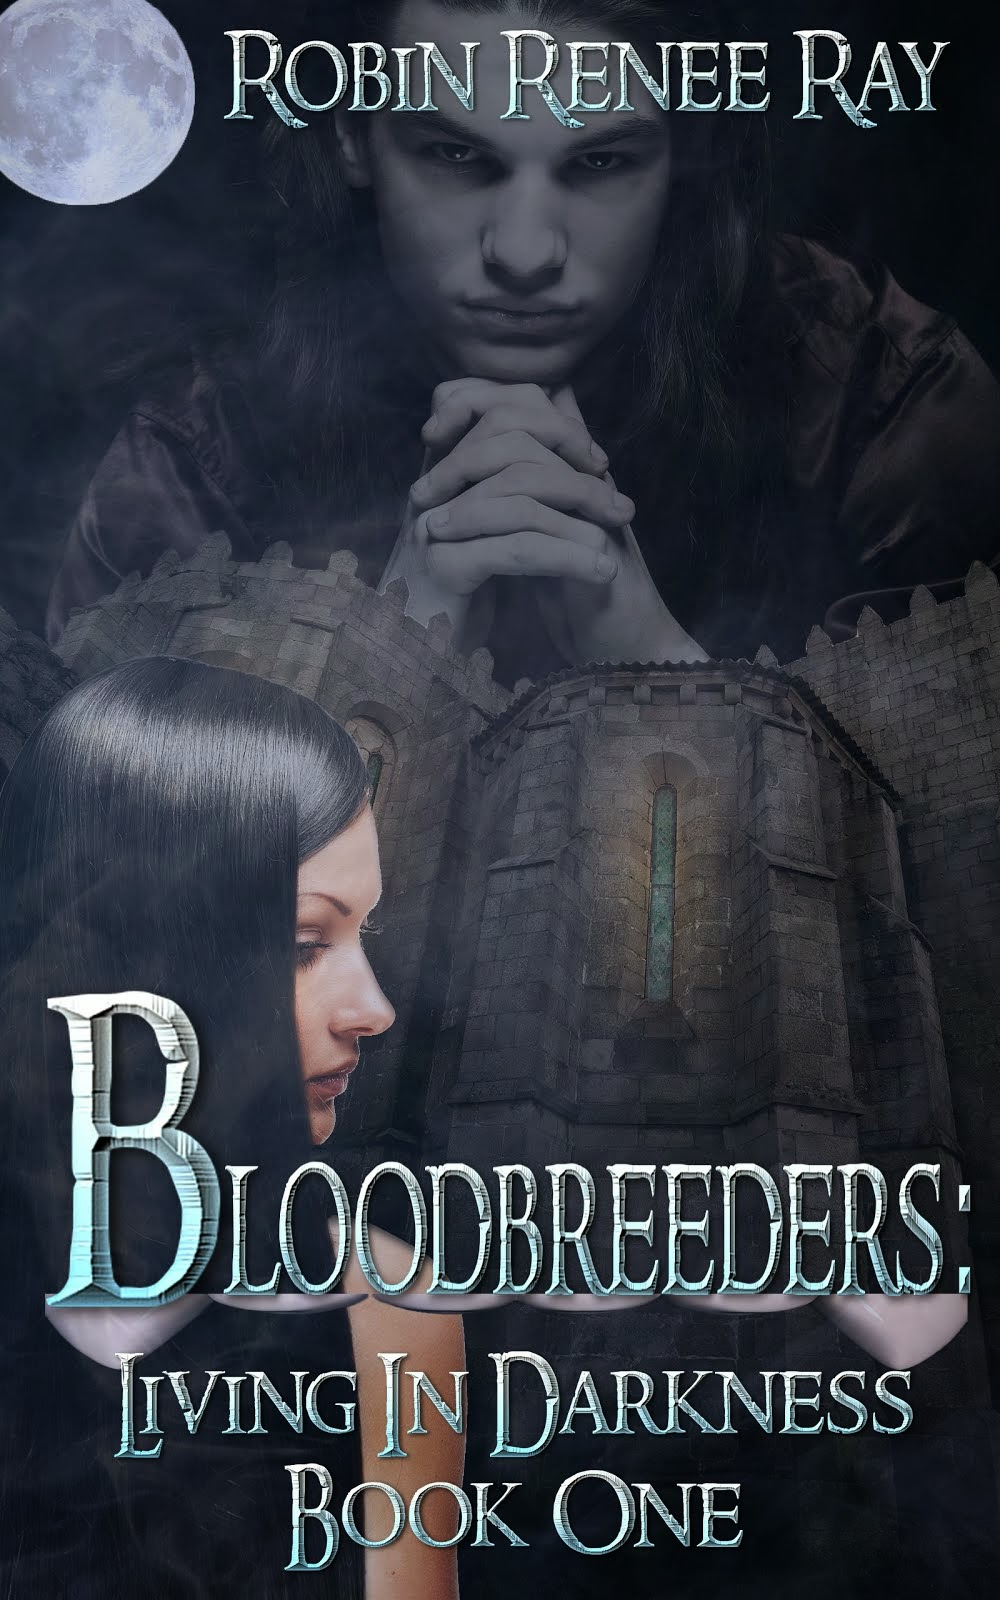 Bloodbreeders is BACK!